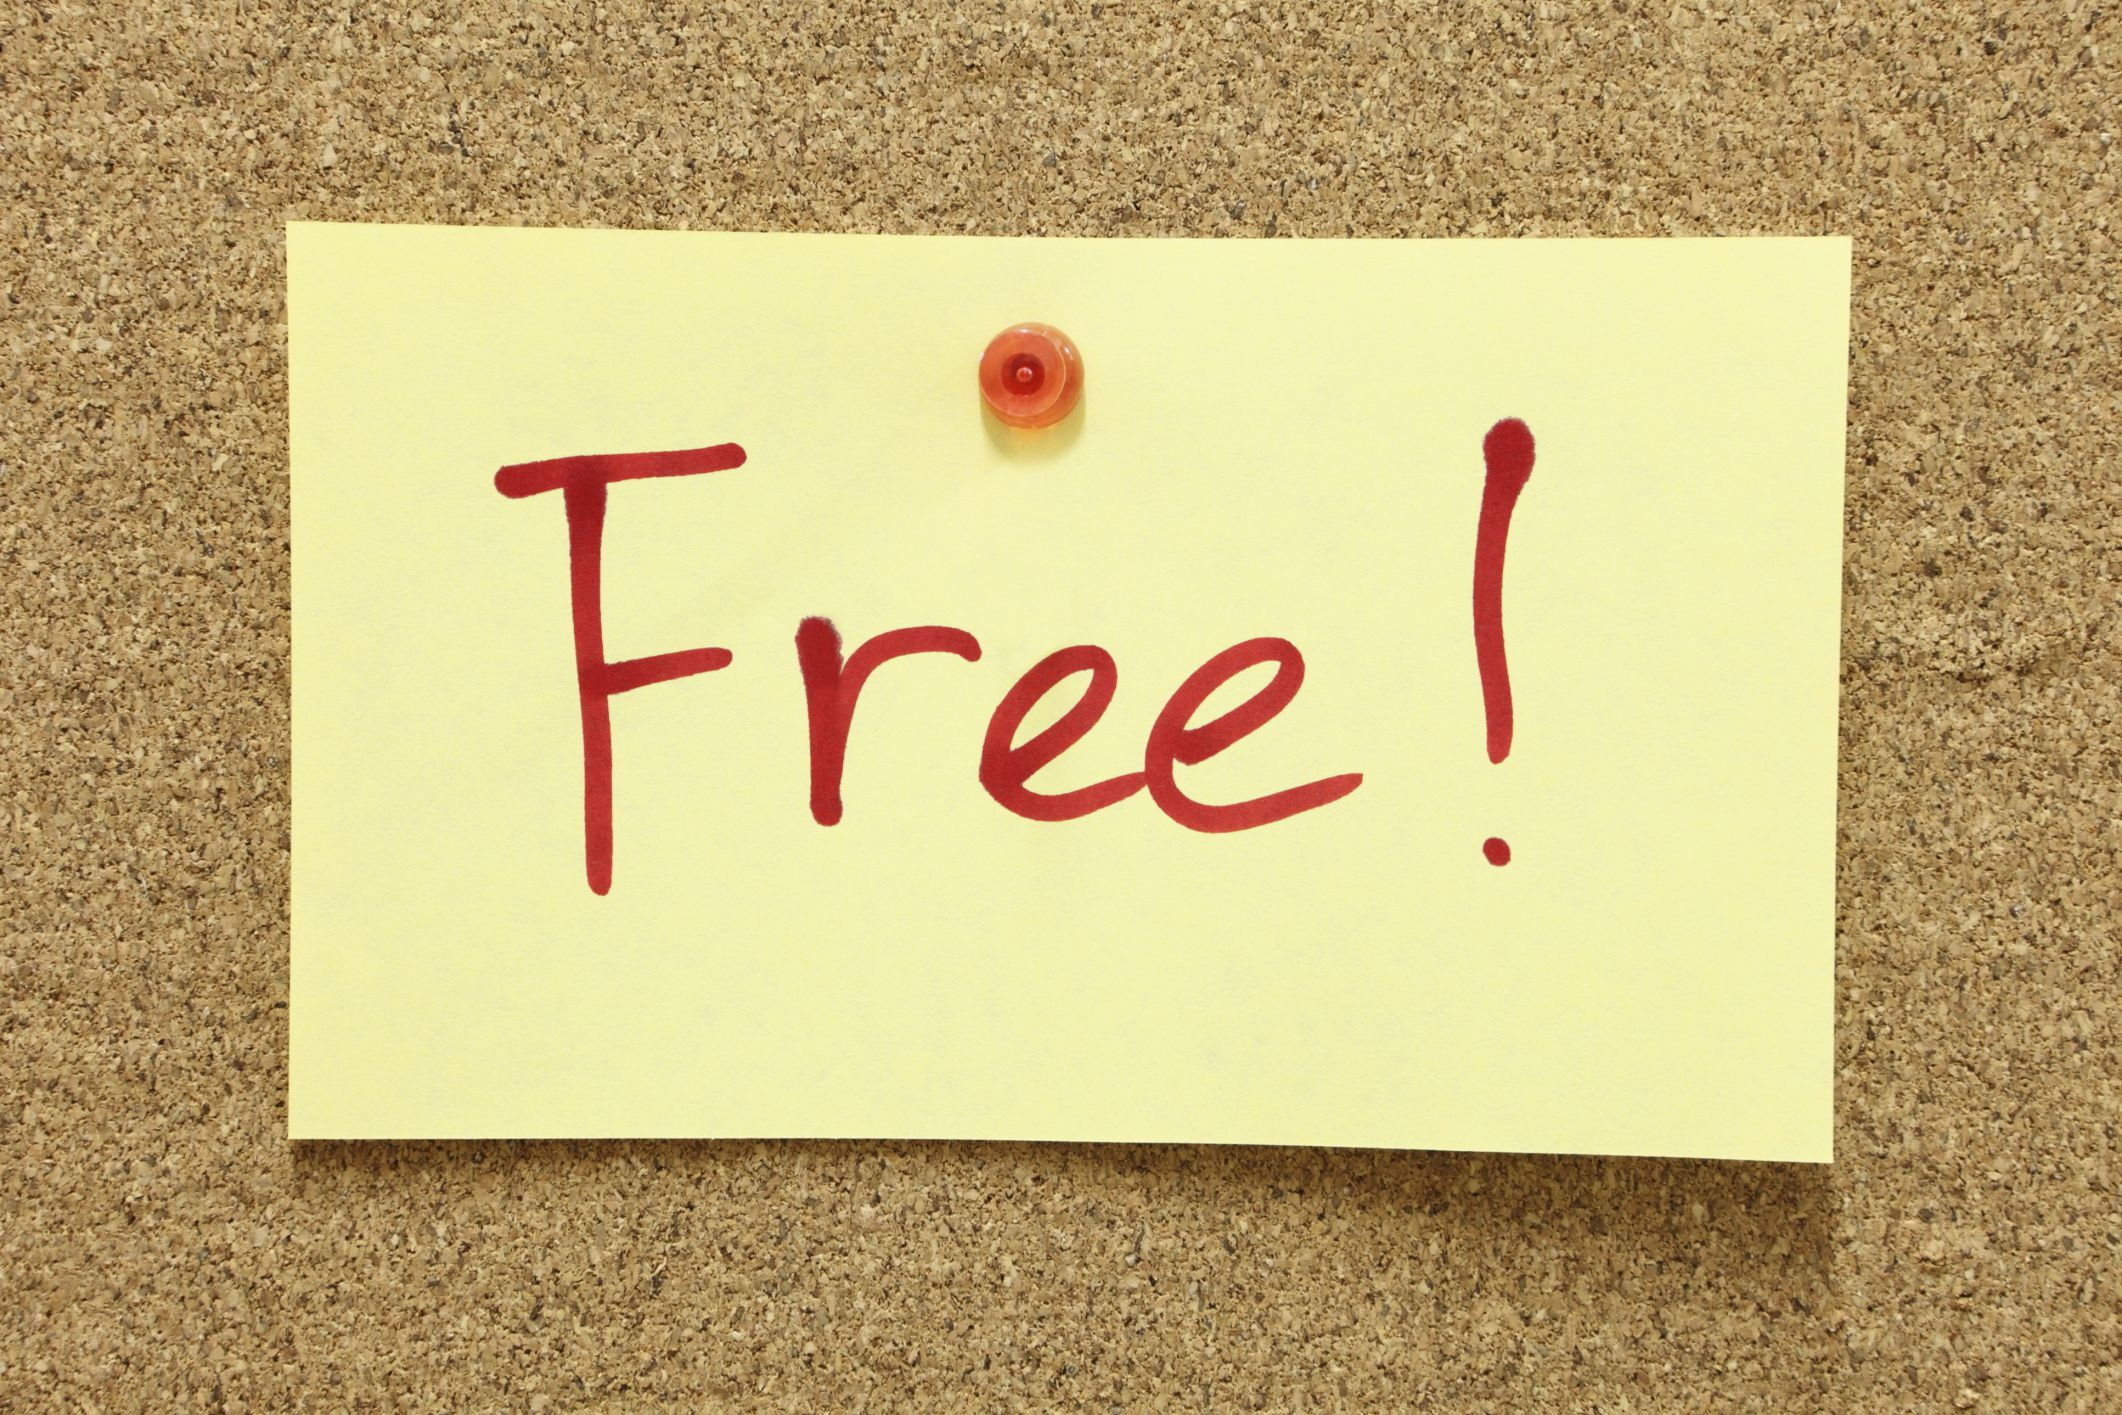 Free Microsoft & Office Product Keys: Are They Real?